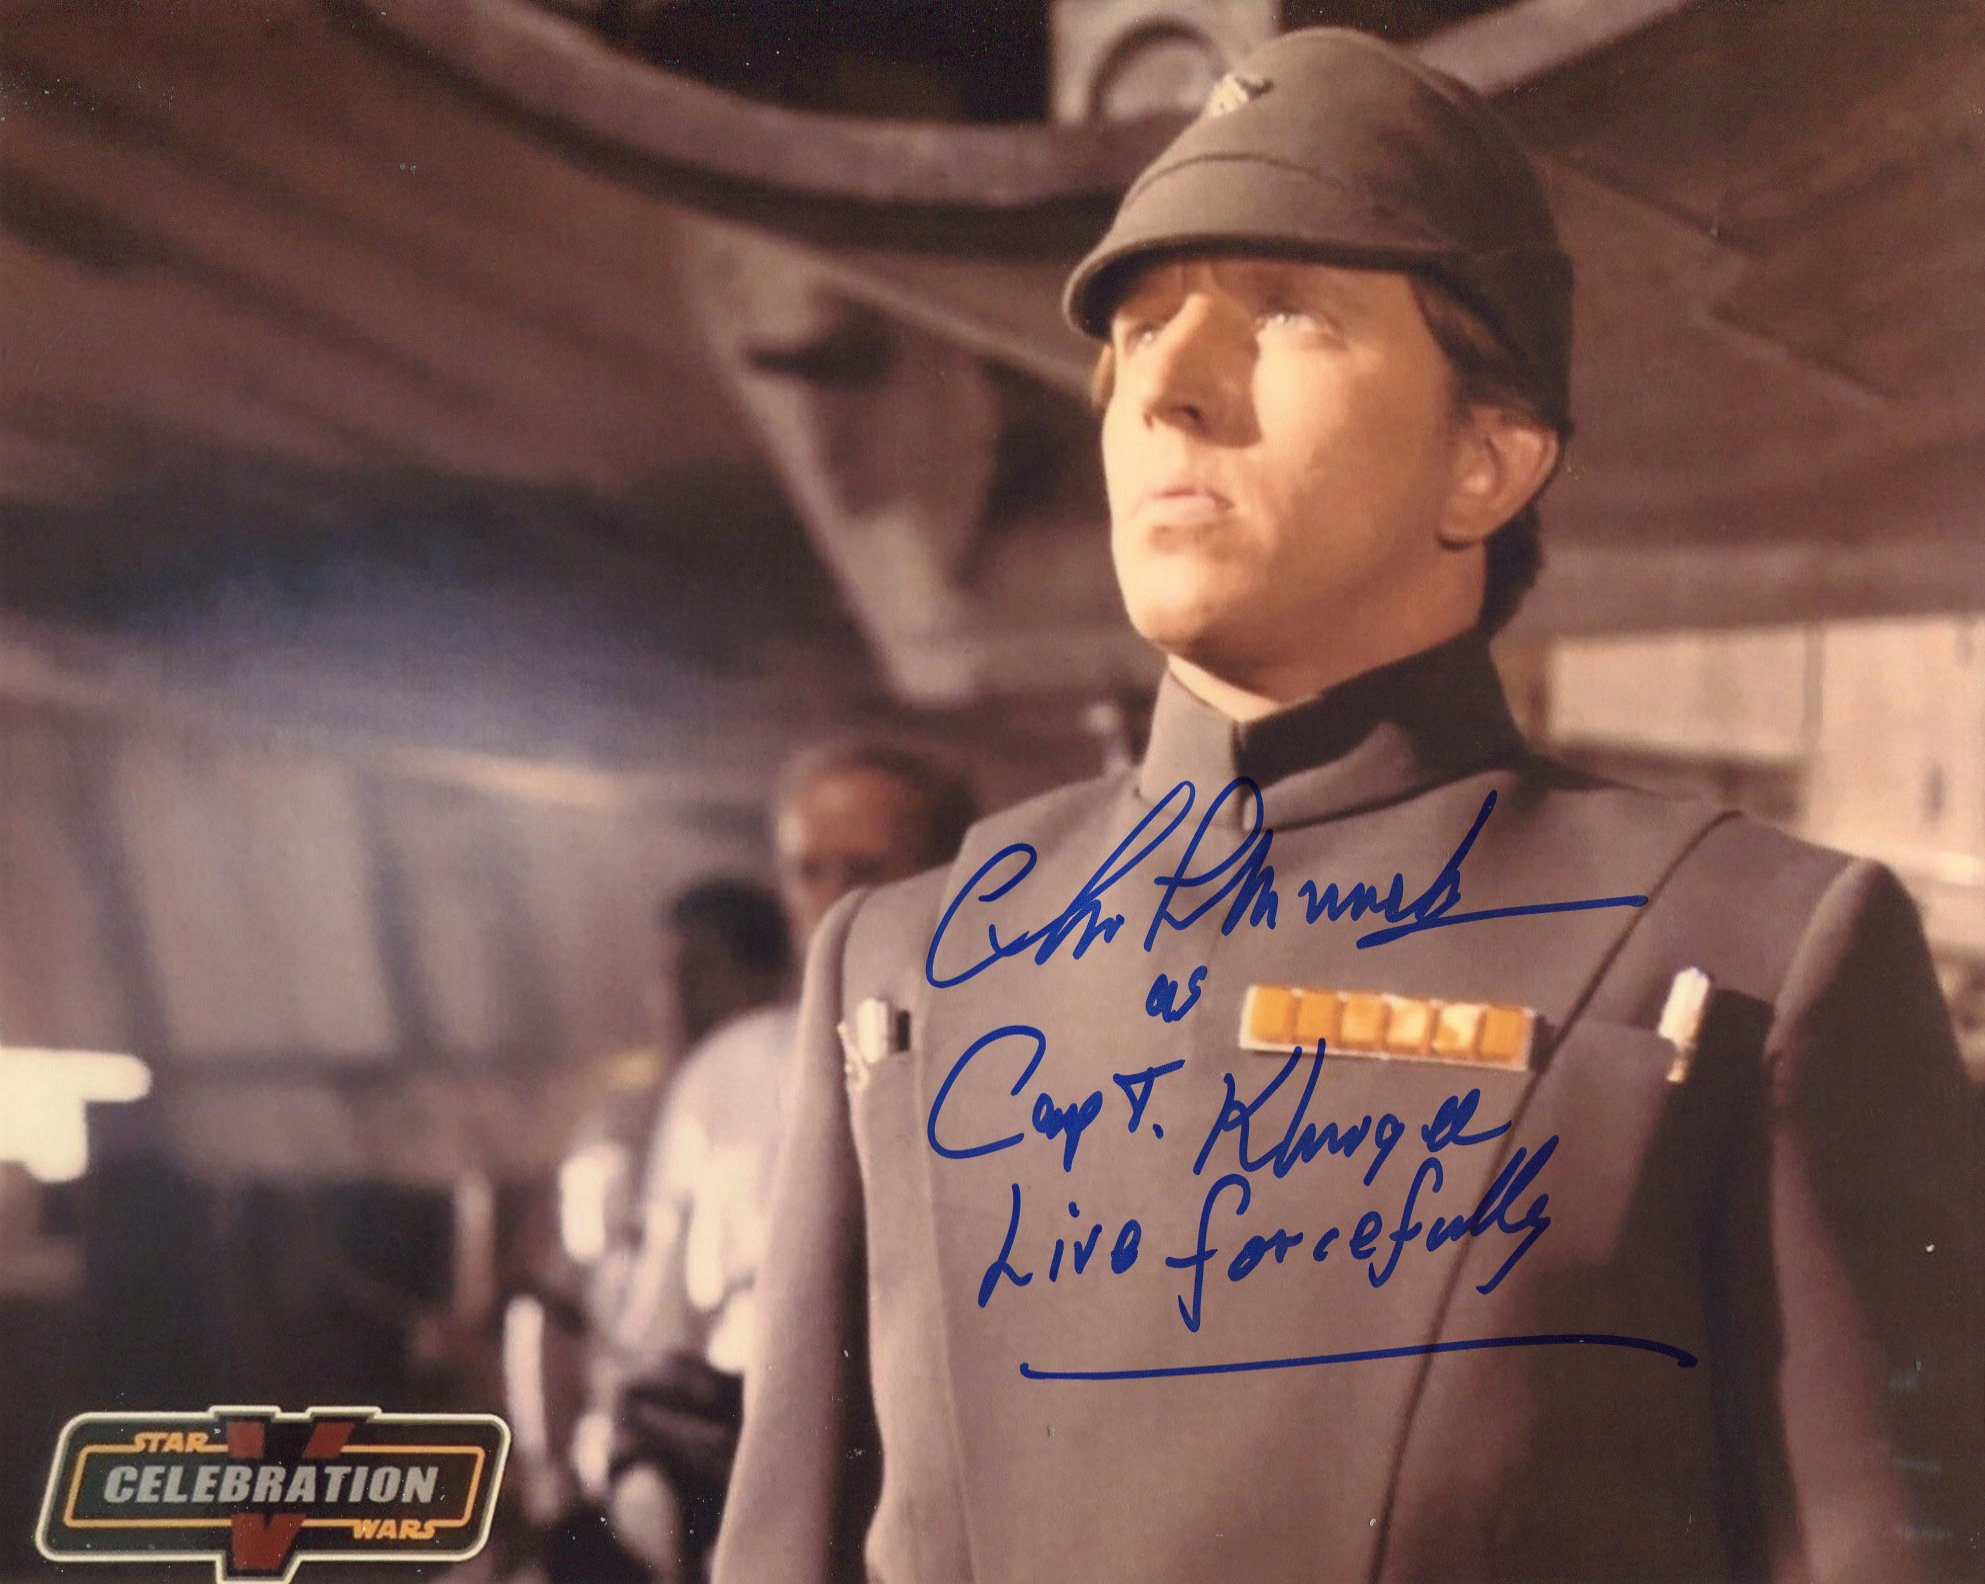 Star Wars 8x10 photo signed by actor Christopher Muncke who played Captain Khurgee. Good